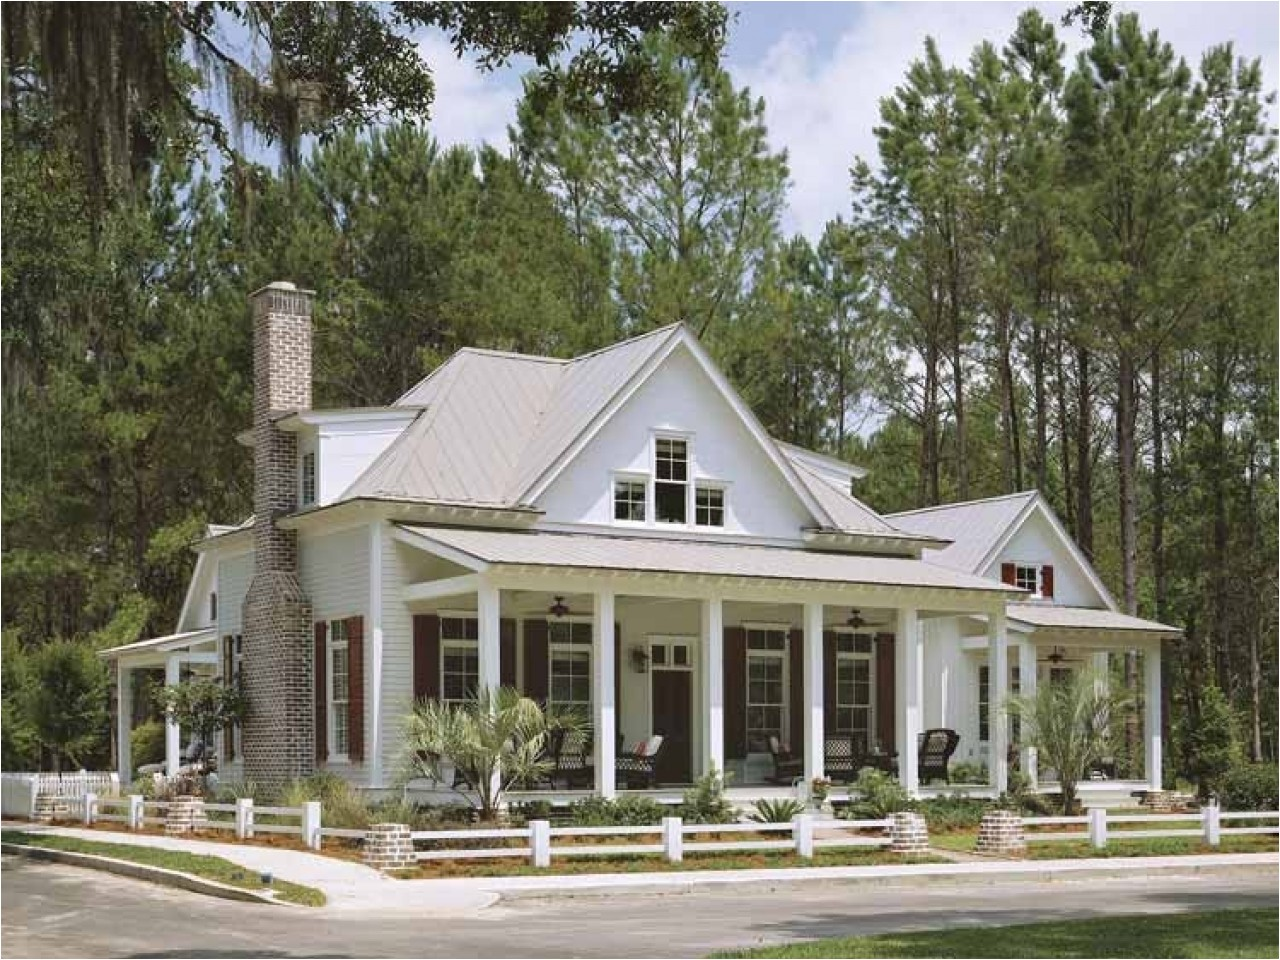 72feeb5ab55798c8 country house plans southern living southern country cottage house plans